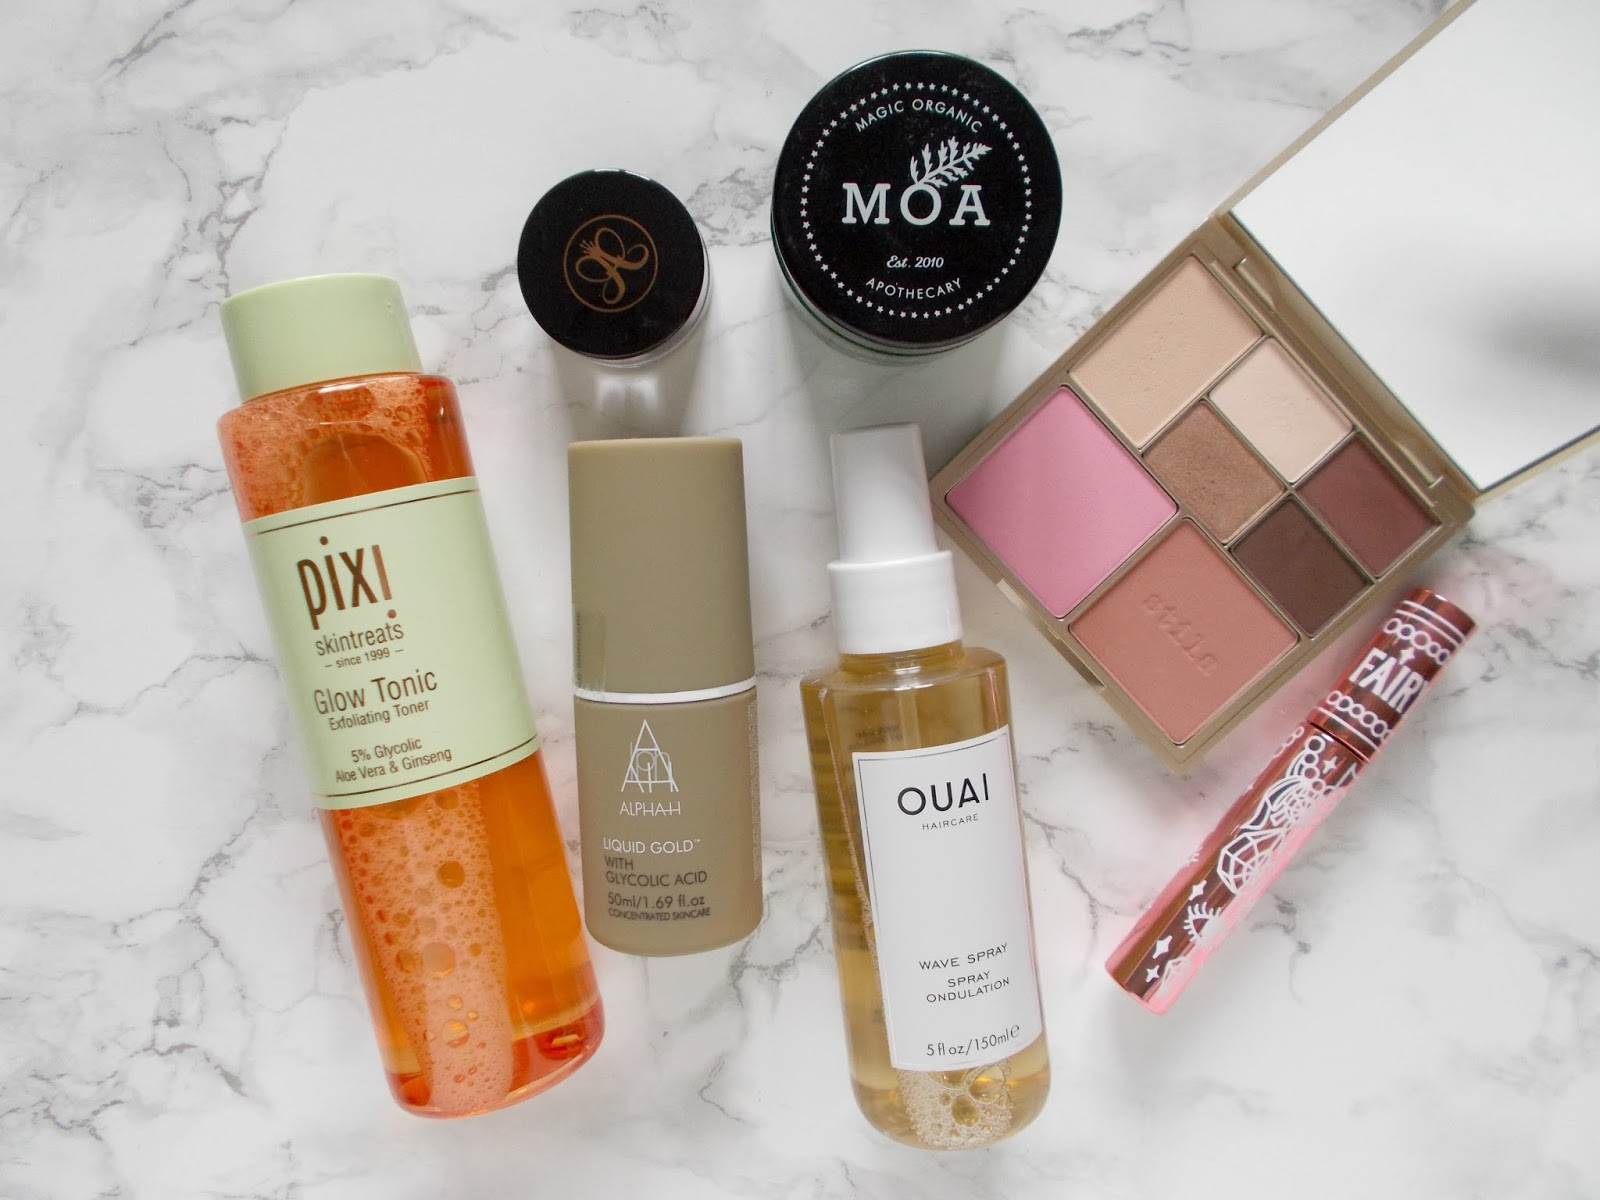 cult beauty haul makeup skincare stila pixi alpha h ouai fairydrops abh moa